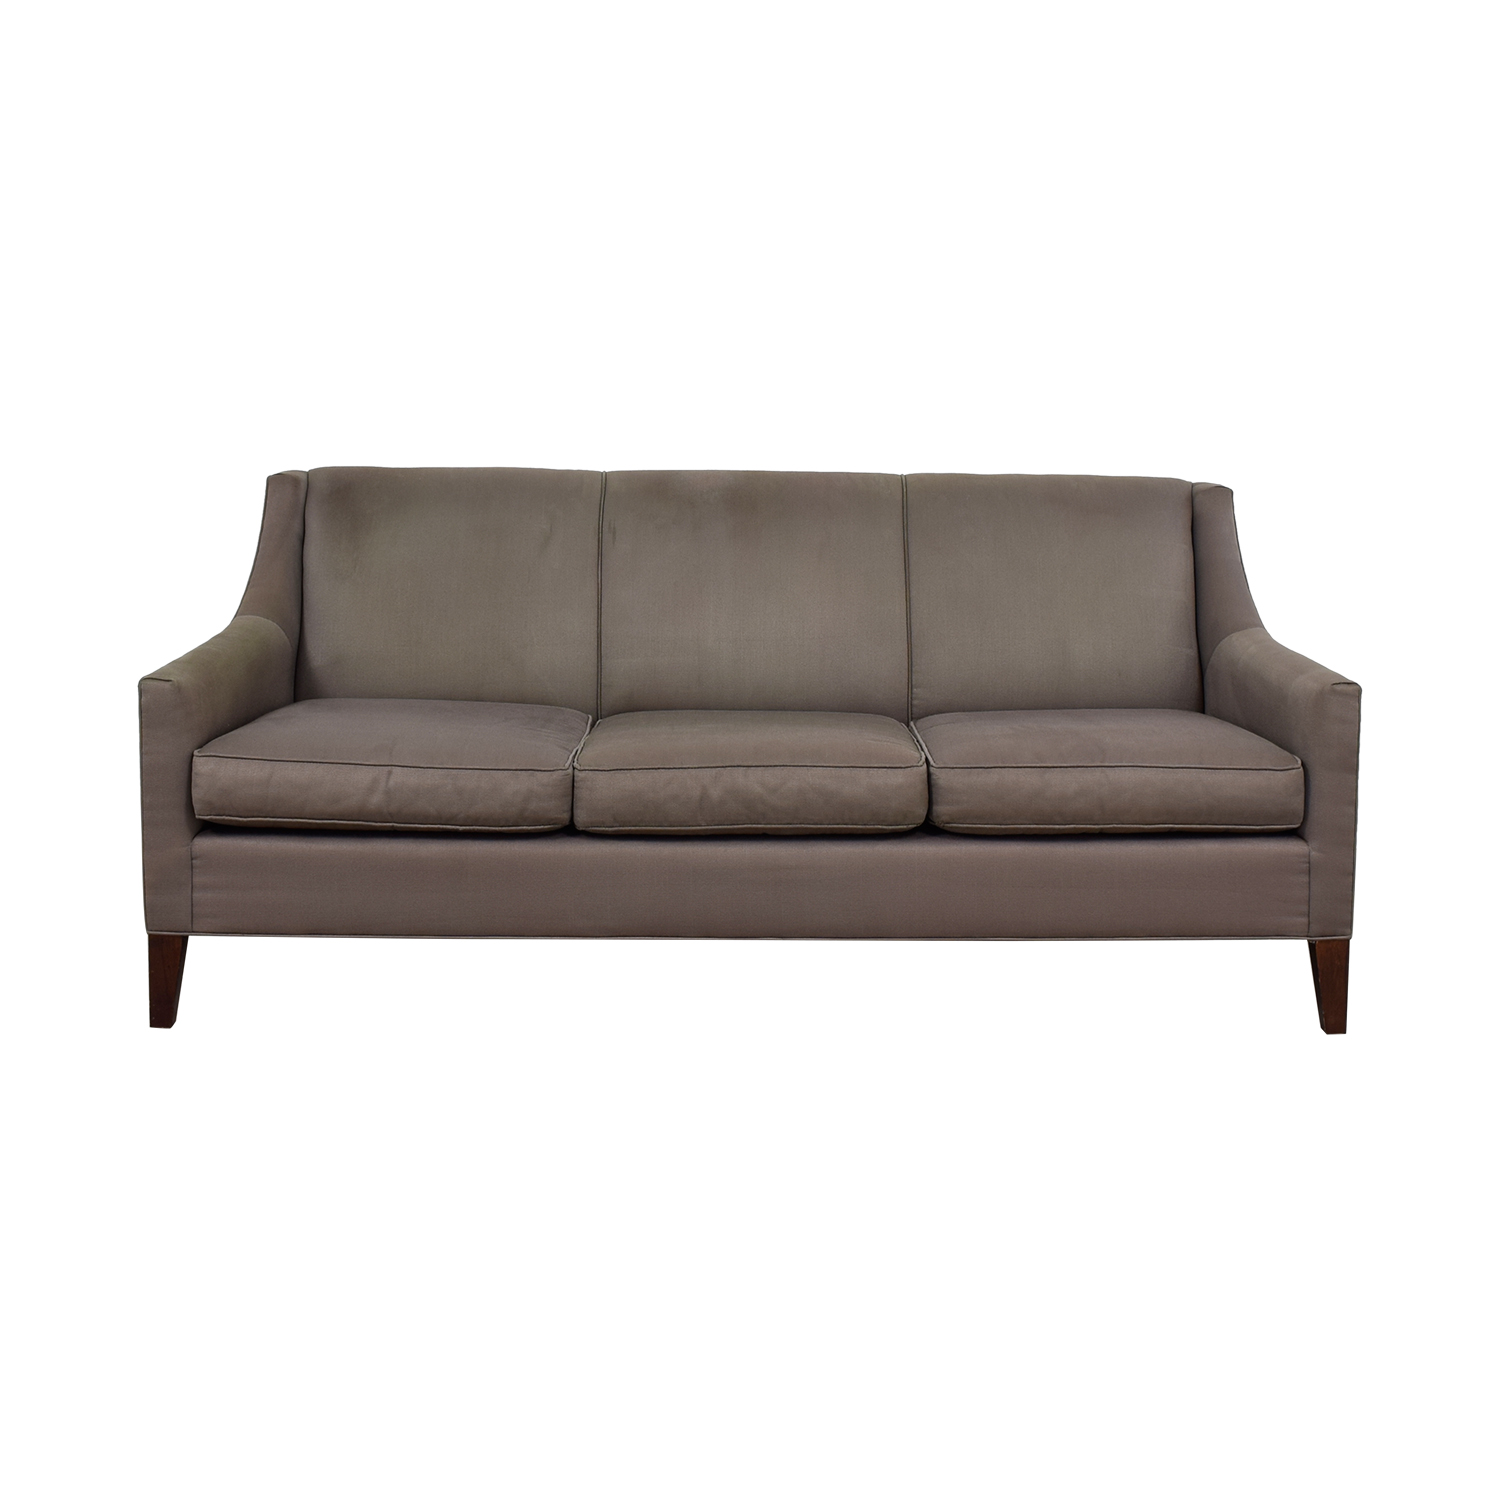 Mitchell Gold & Bob Williams Mitchell Gold & Bob Williams Cara Grey Three-Cushion Sofa